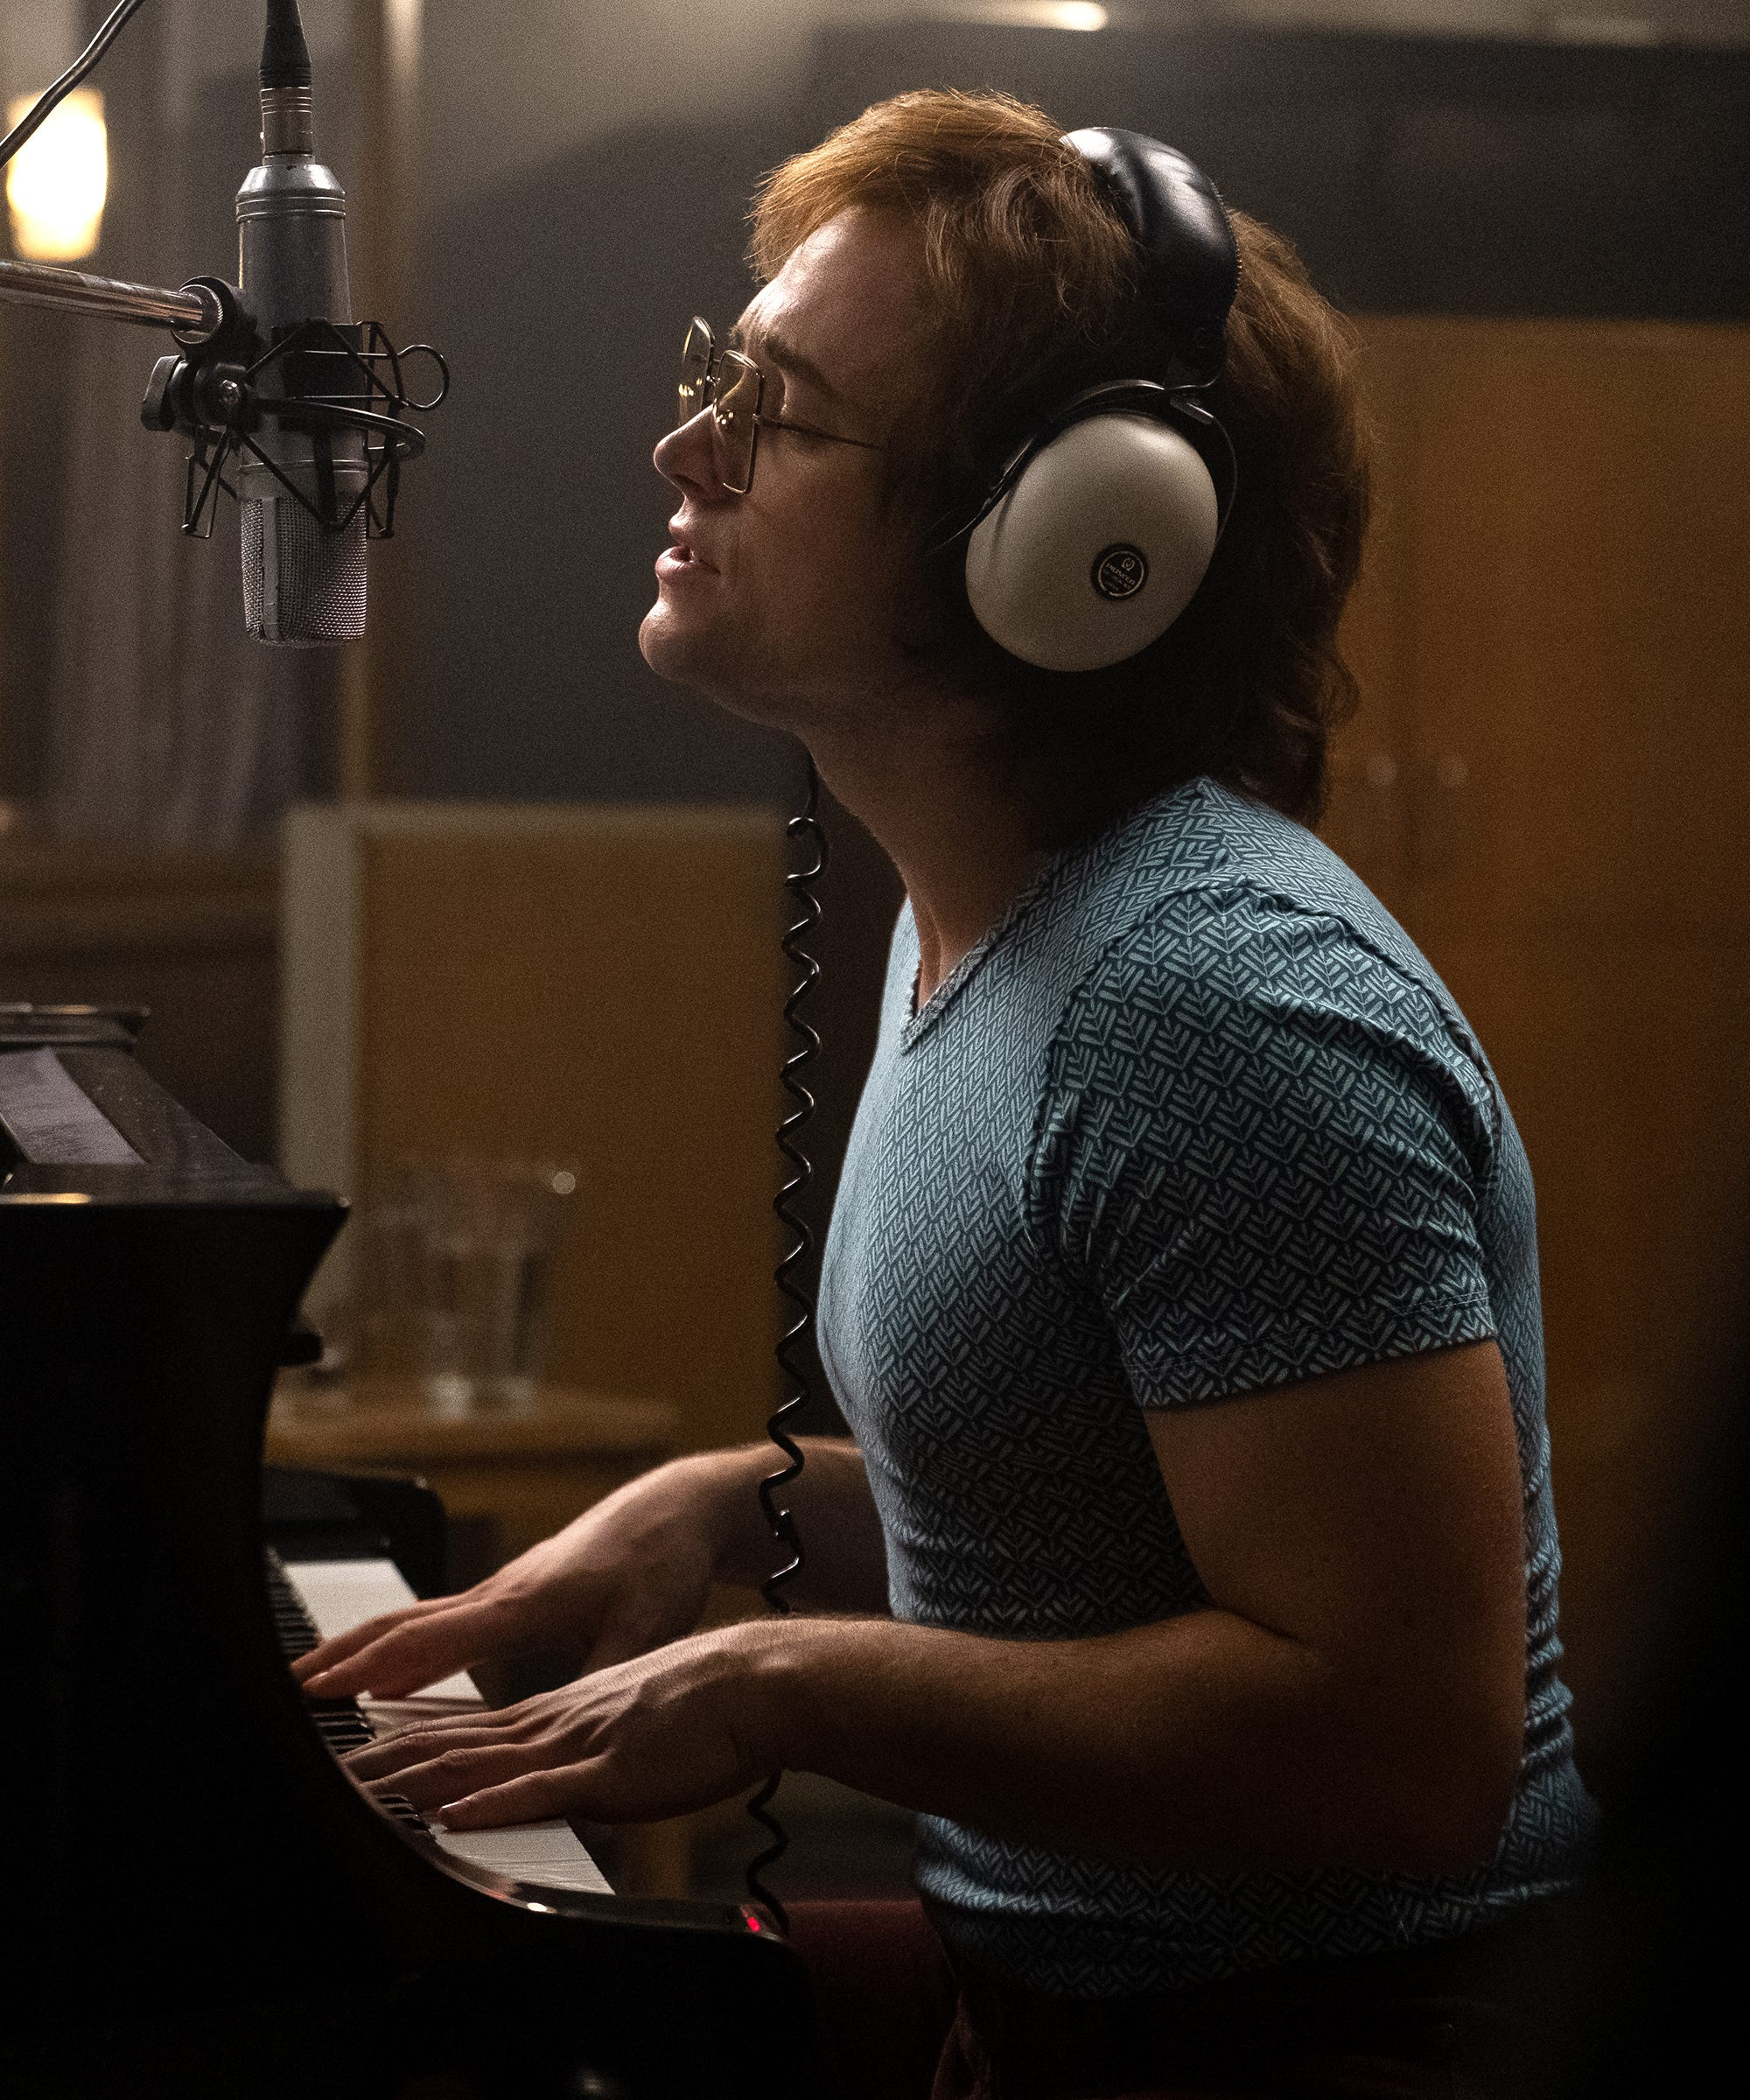 """The Song """"Rocket Man"""" Has Its Own Origin Story Outside Of The New Elton John Biopic"""